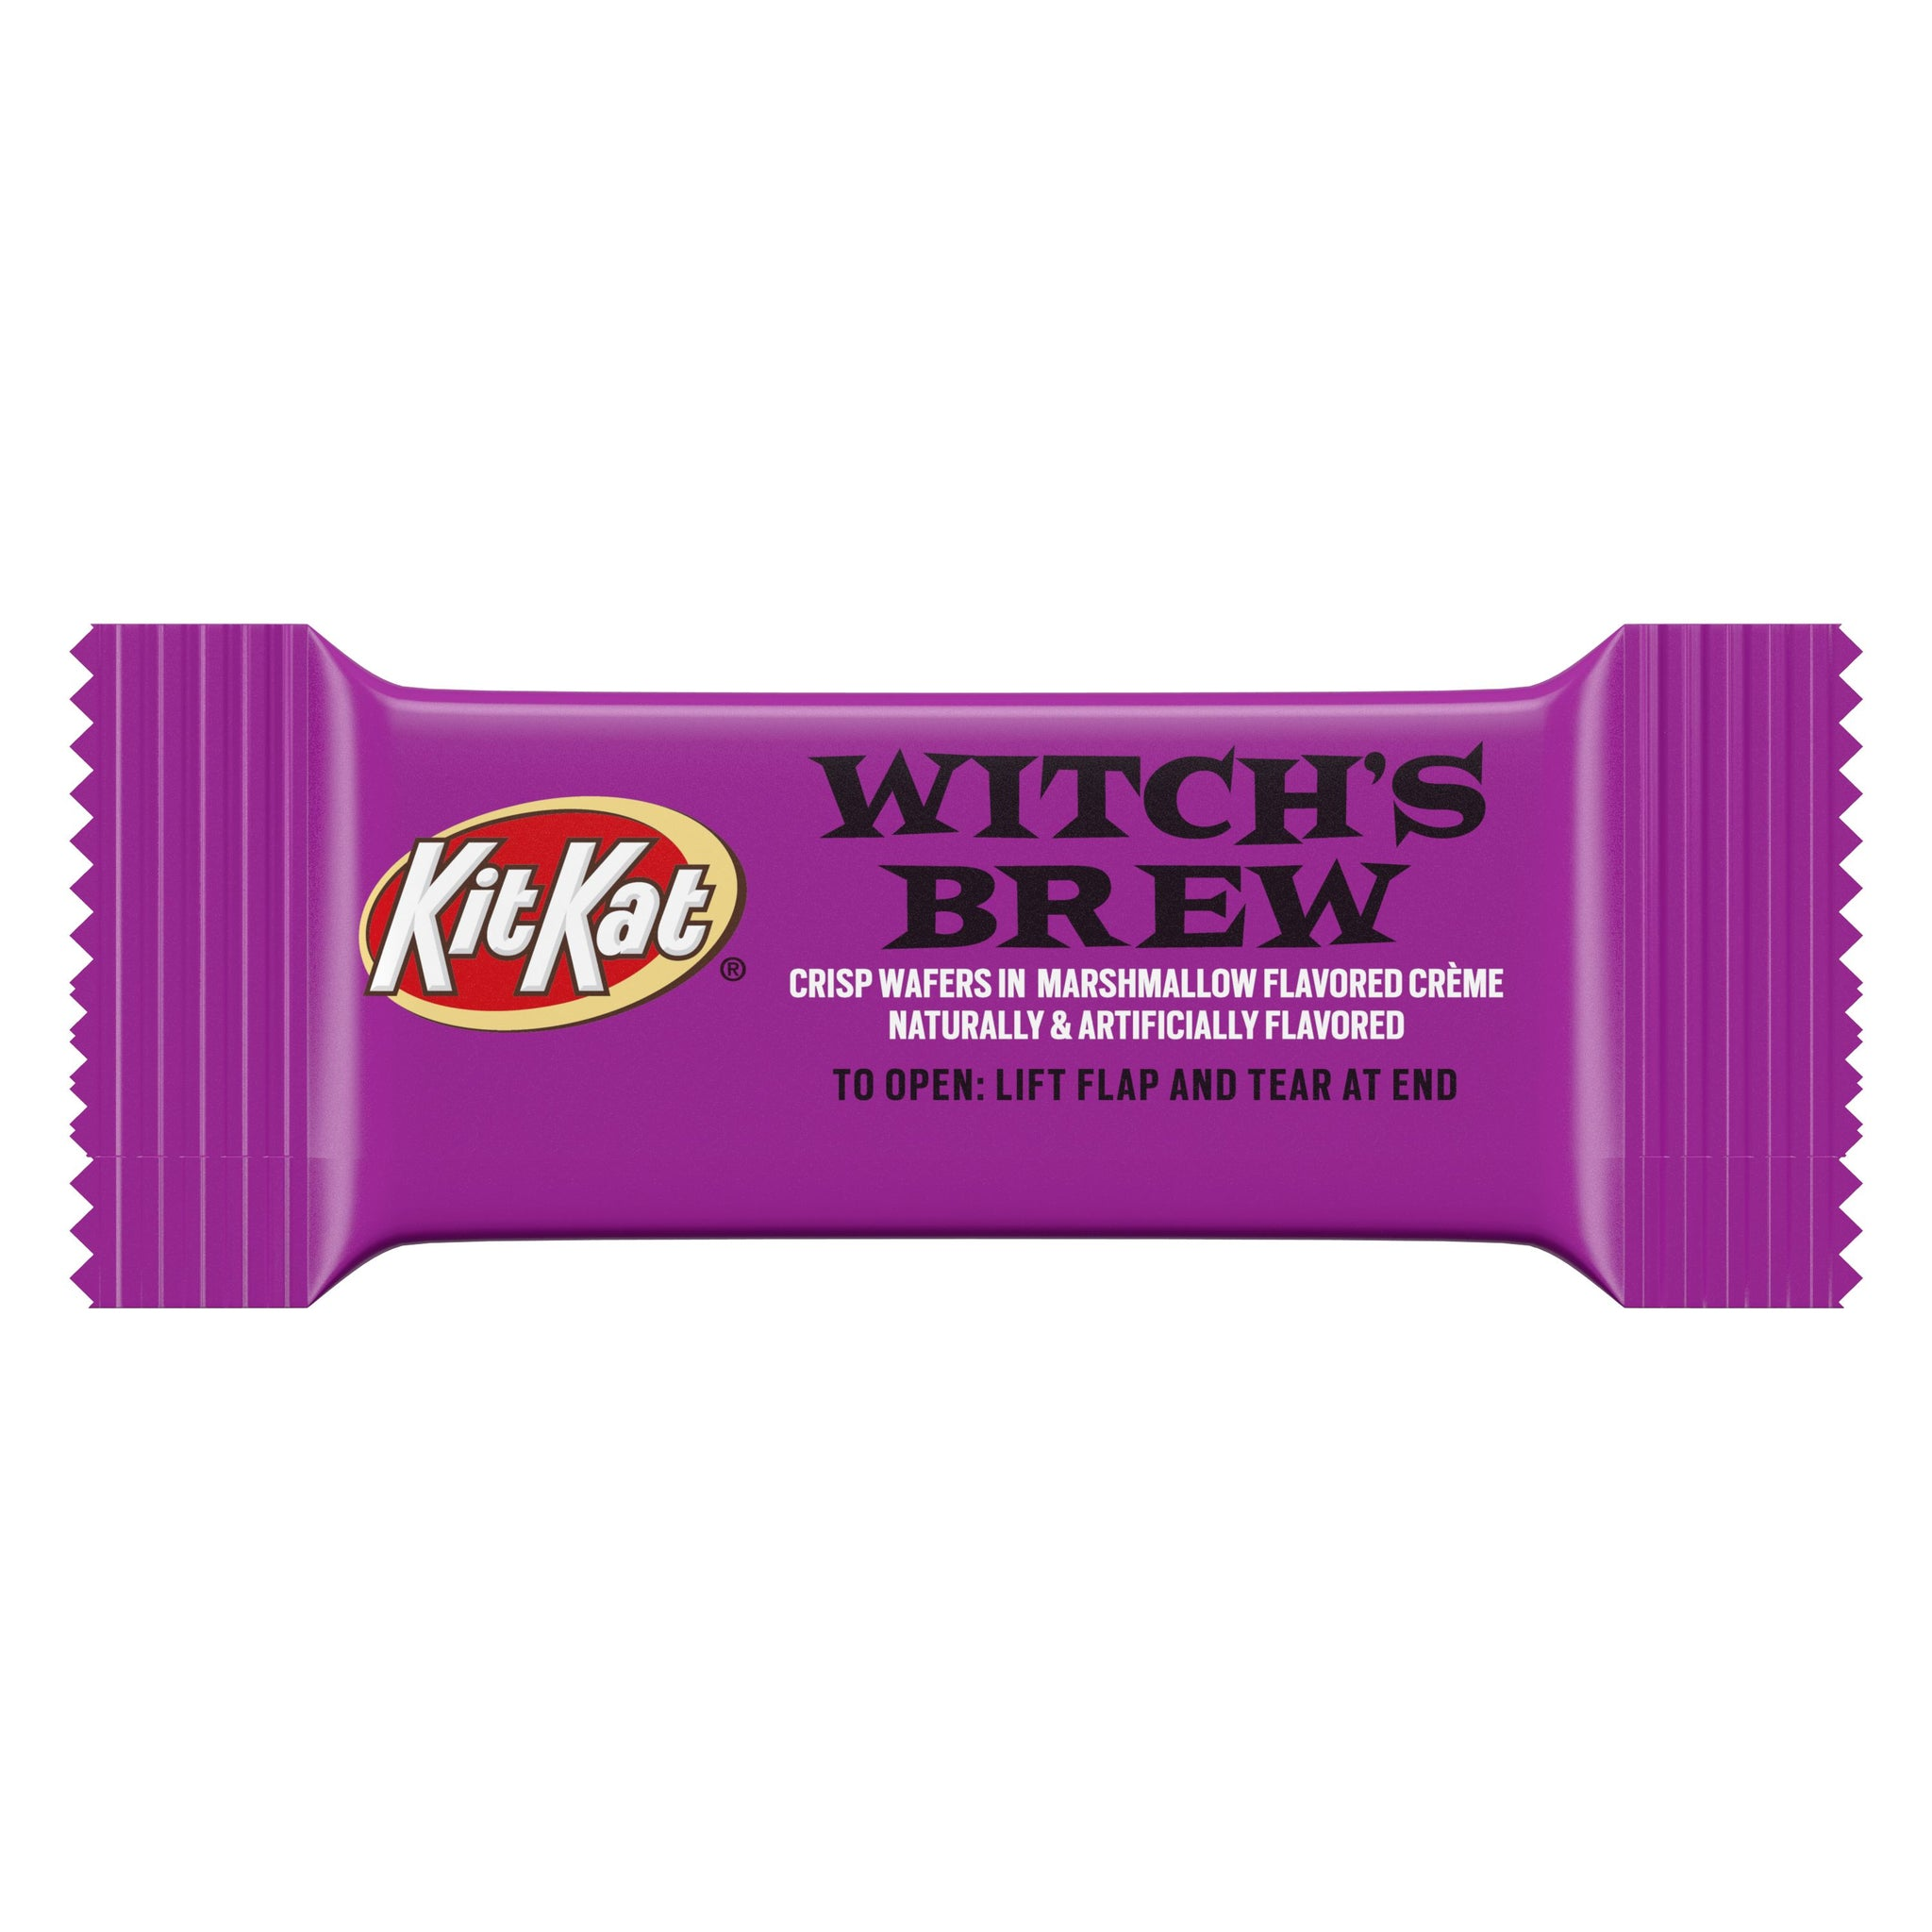 Kit Kat Witch's Brew in Green Marshmallow Flavored Crème, 9.8oz